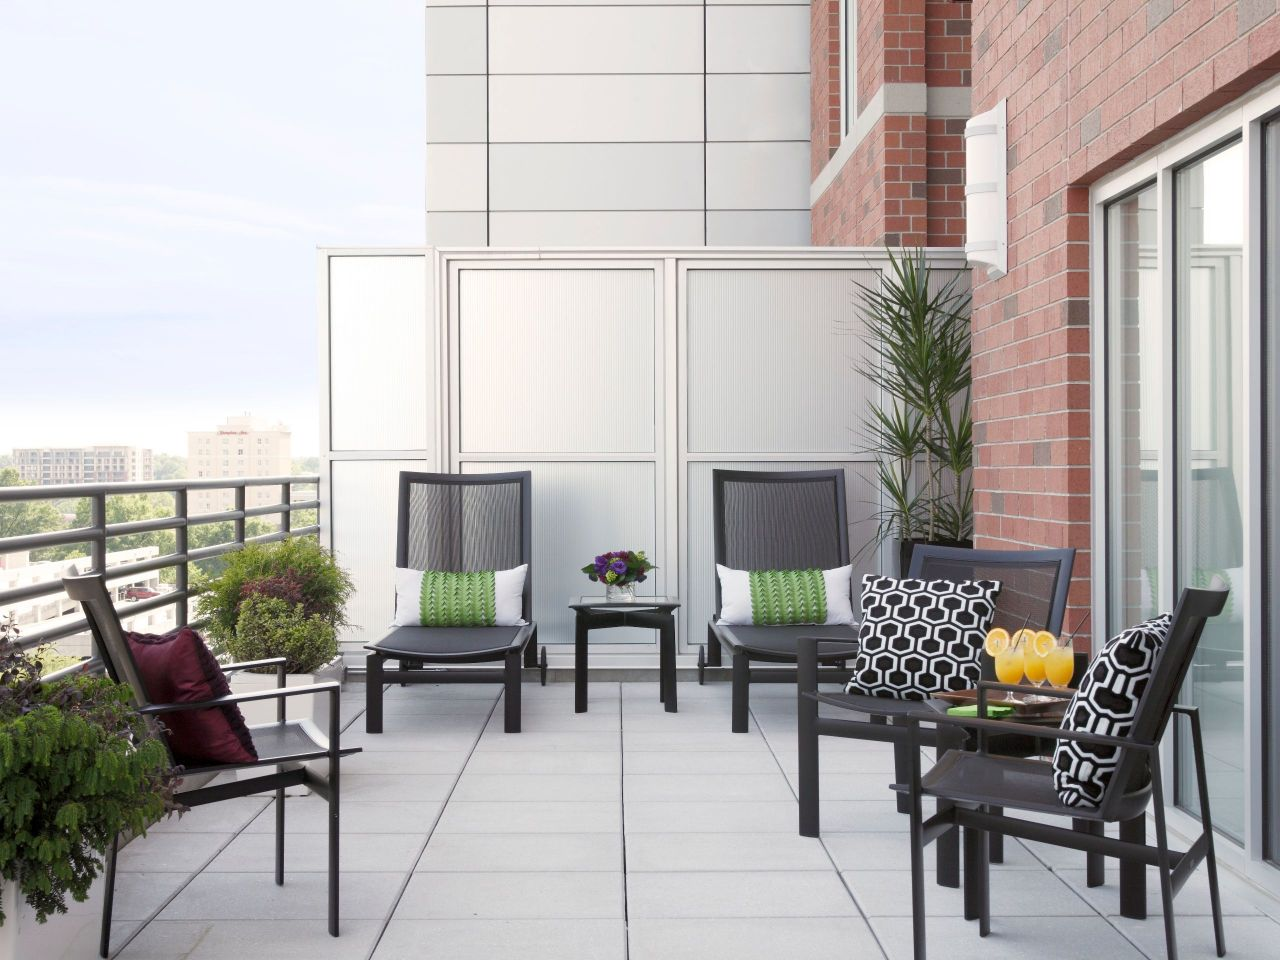 Hyatt House Diamond Suite Terrace